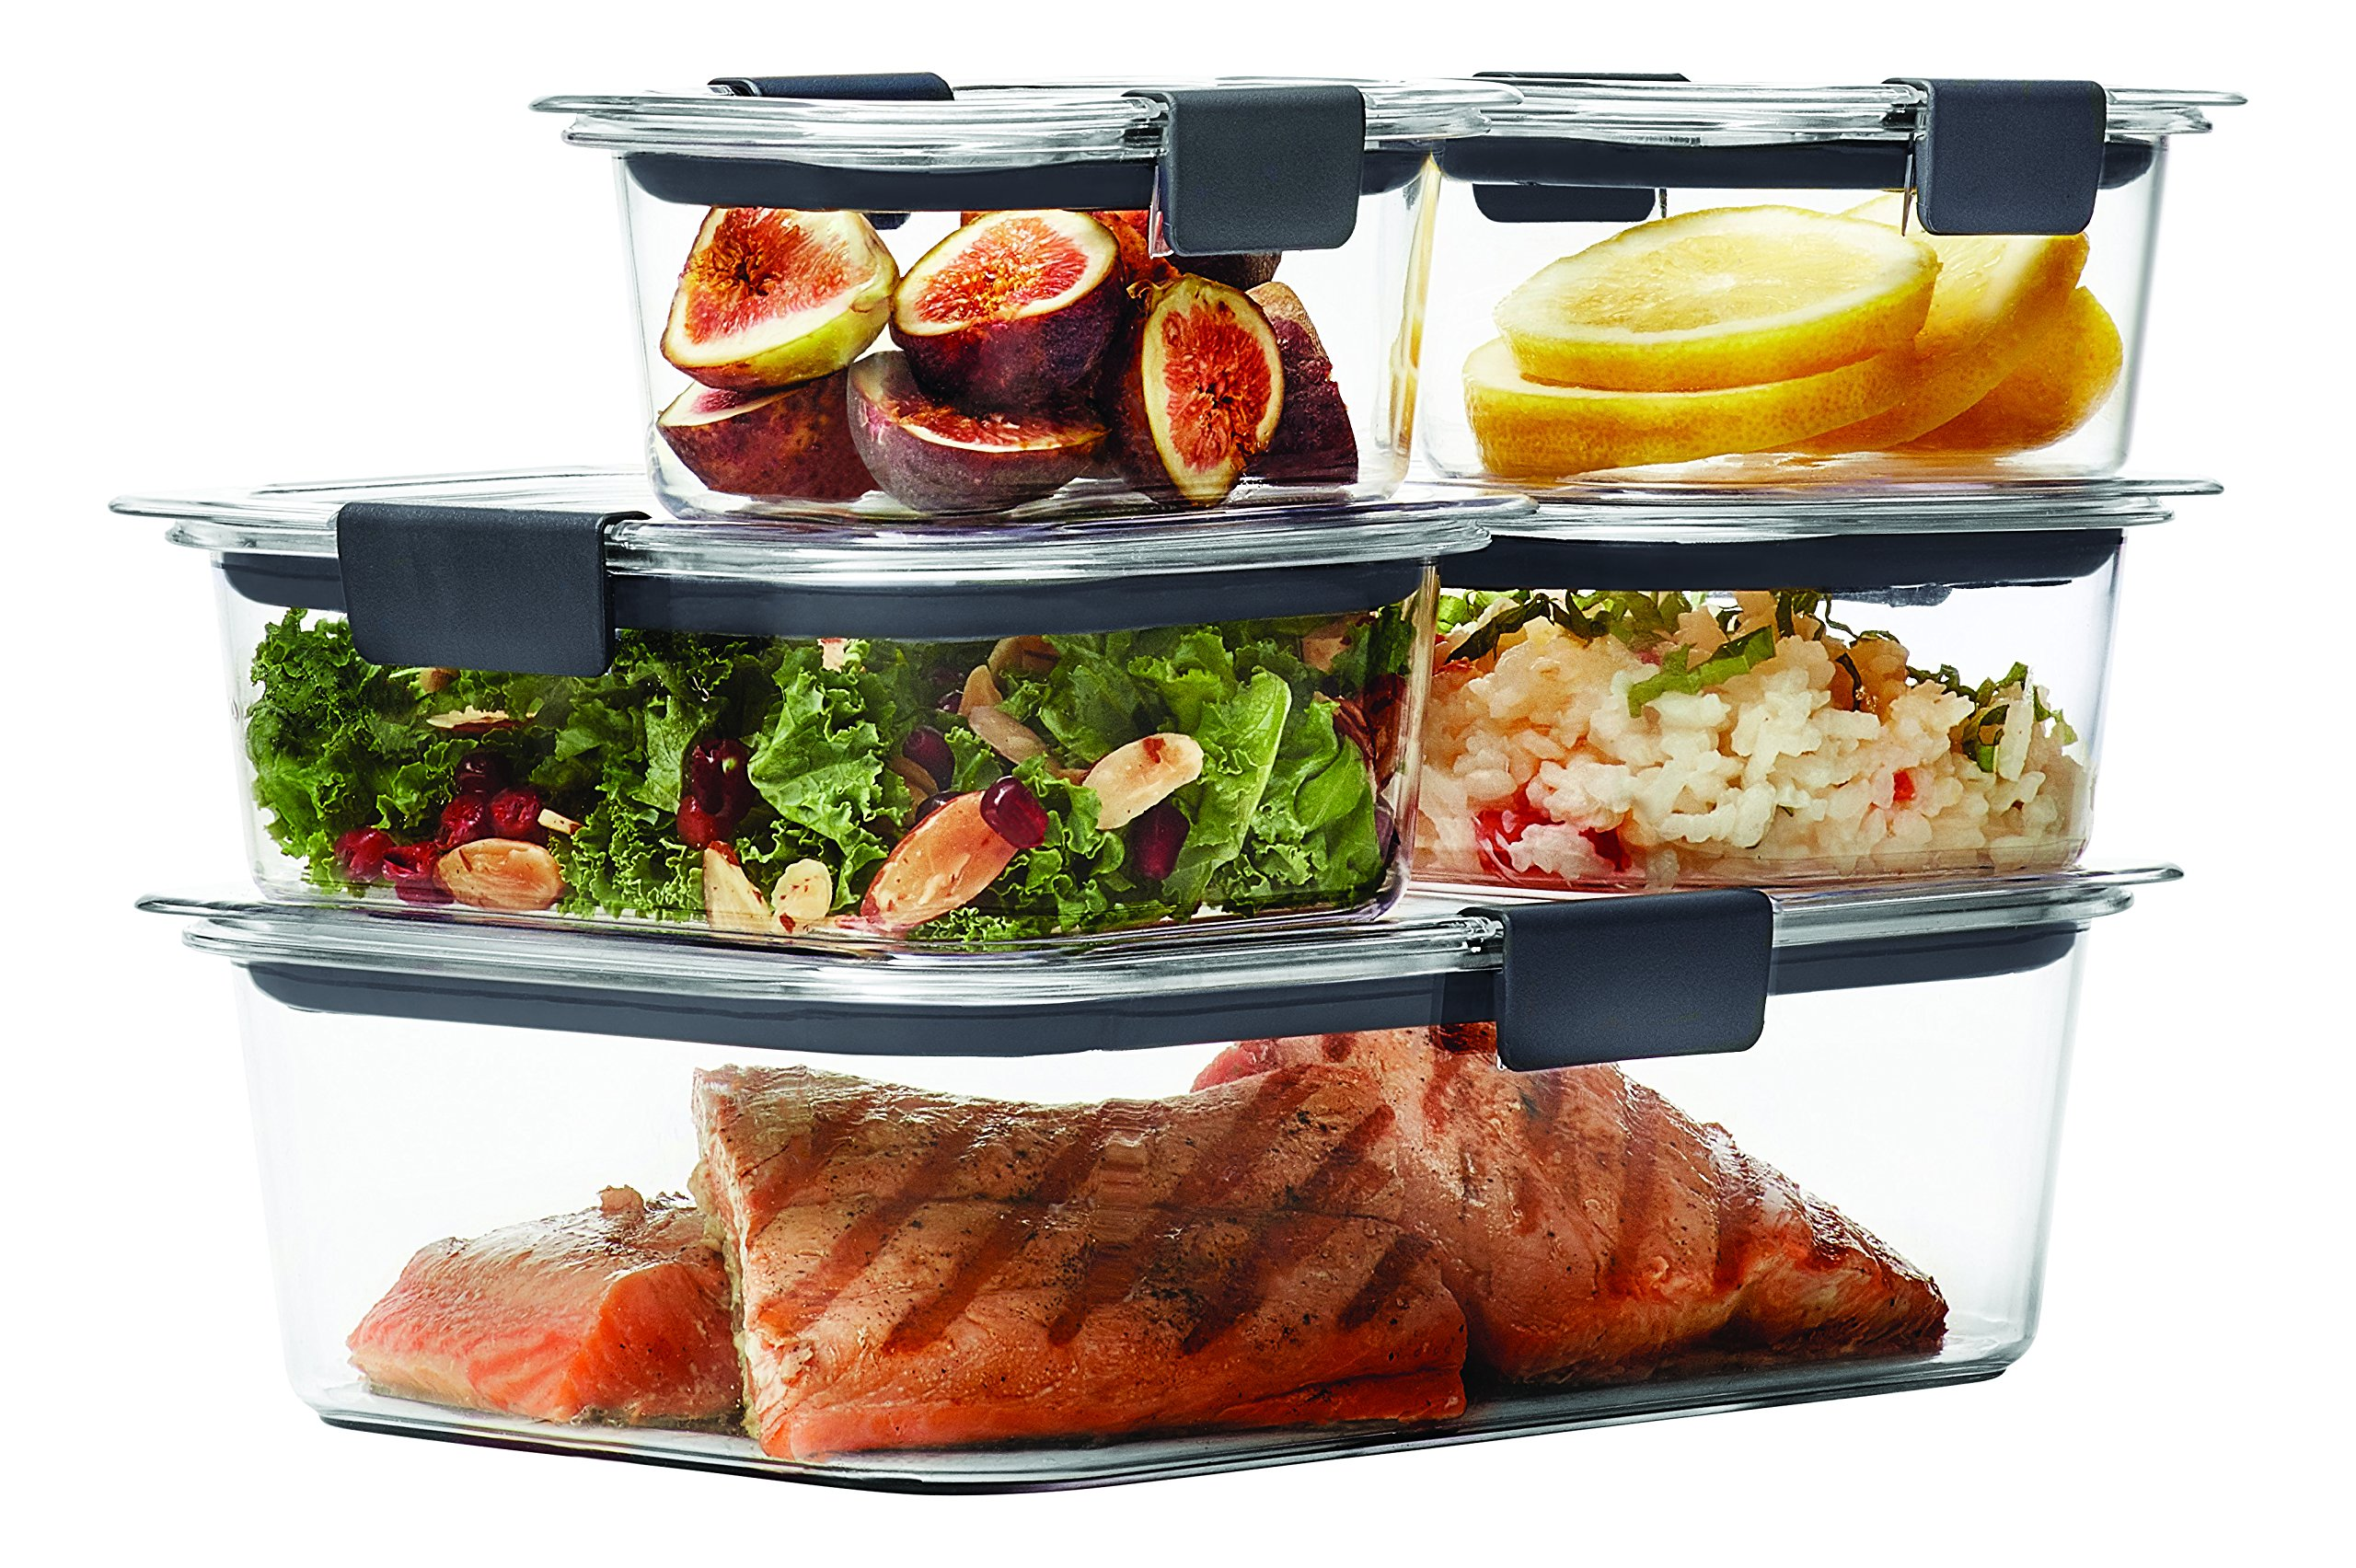 Rubbermaid Brilliance Food Storage Container, Clear, 10-Piece Set 1976520 by Rubbermaid